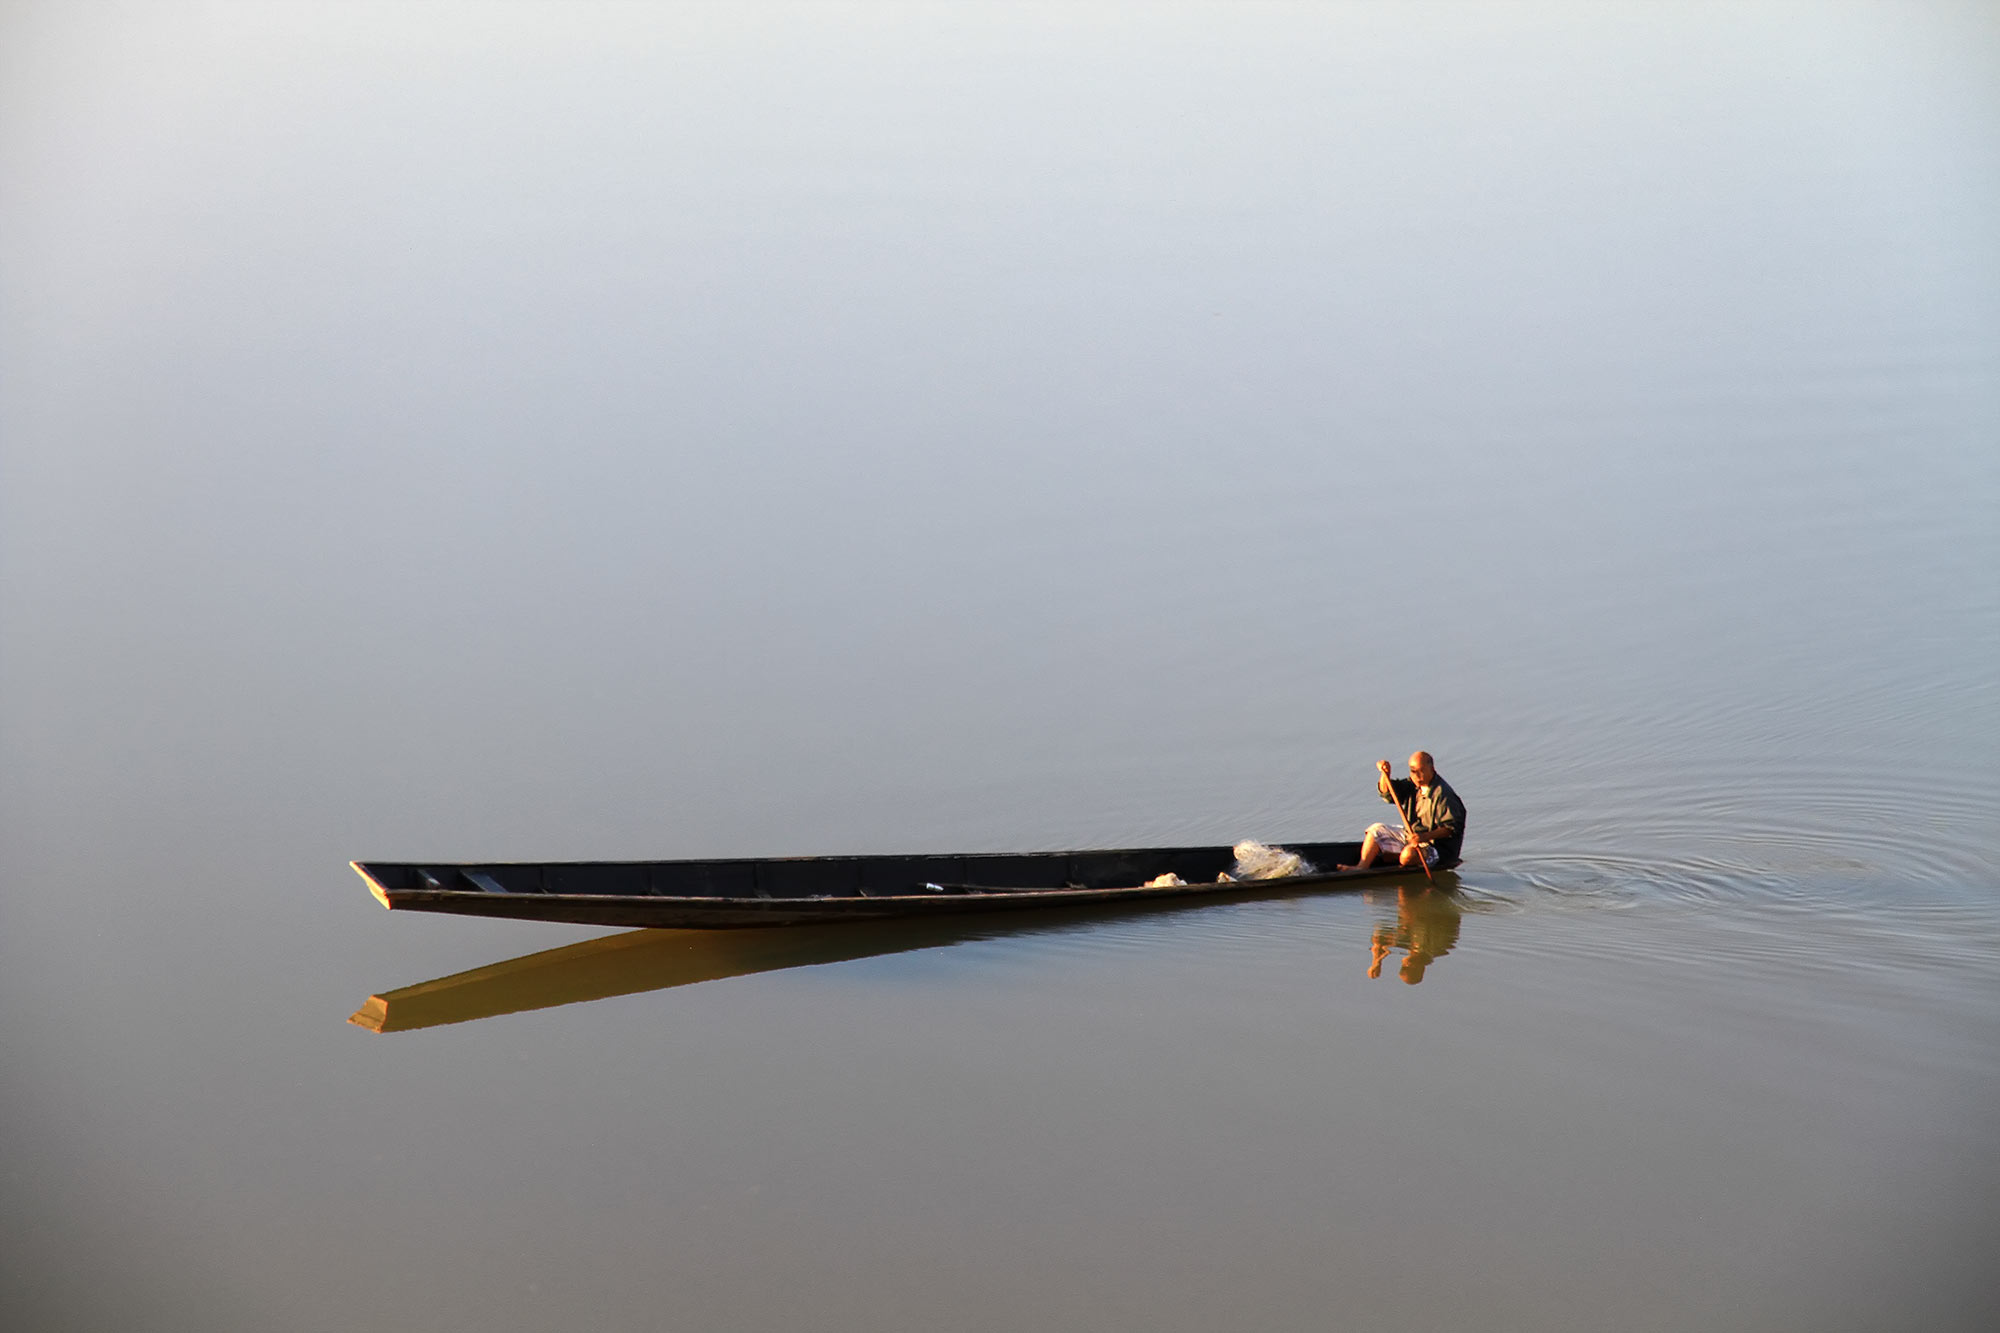 boat-on-mekong-river-laos